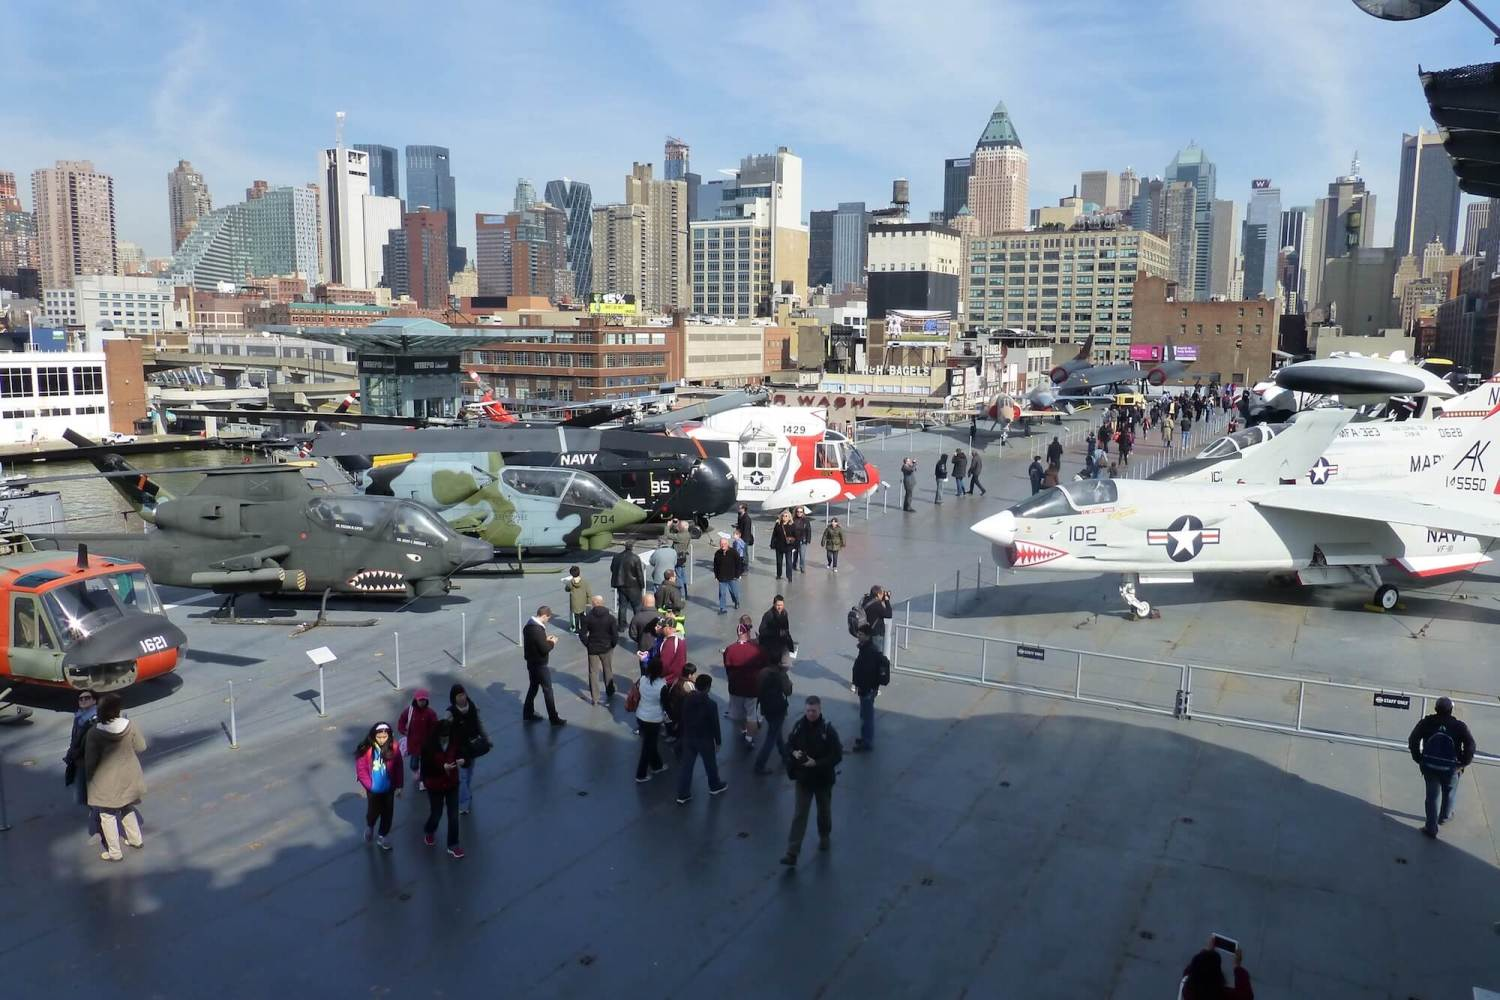 Intrepid flight deck